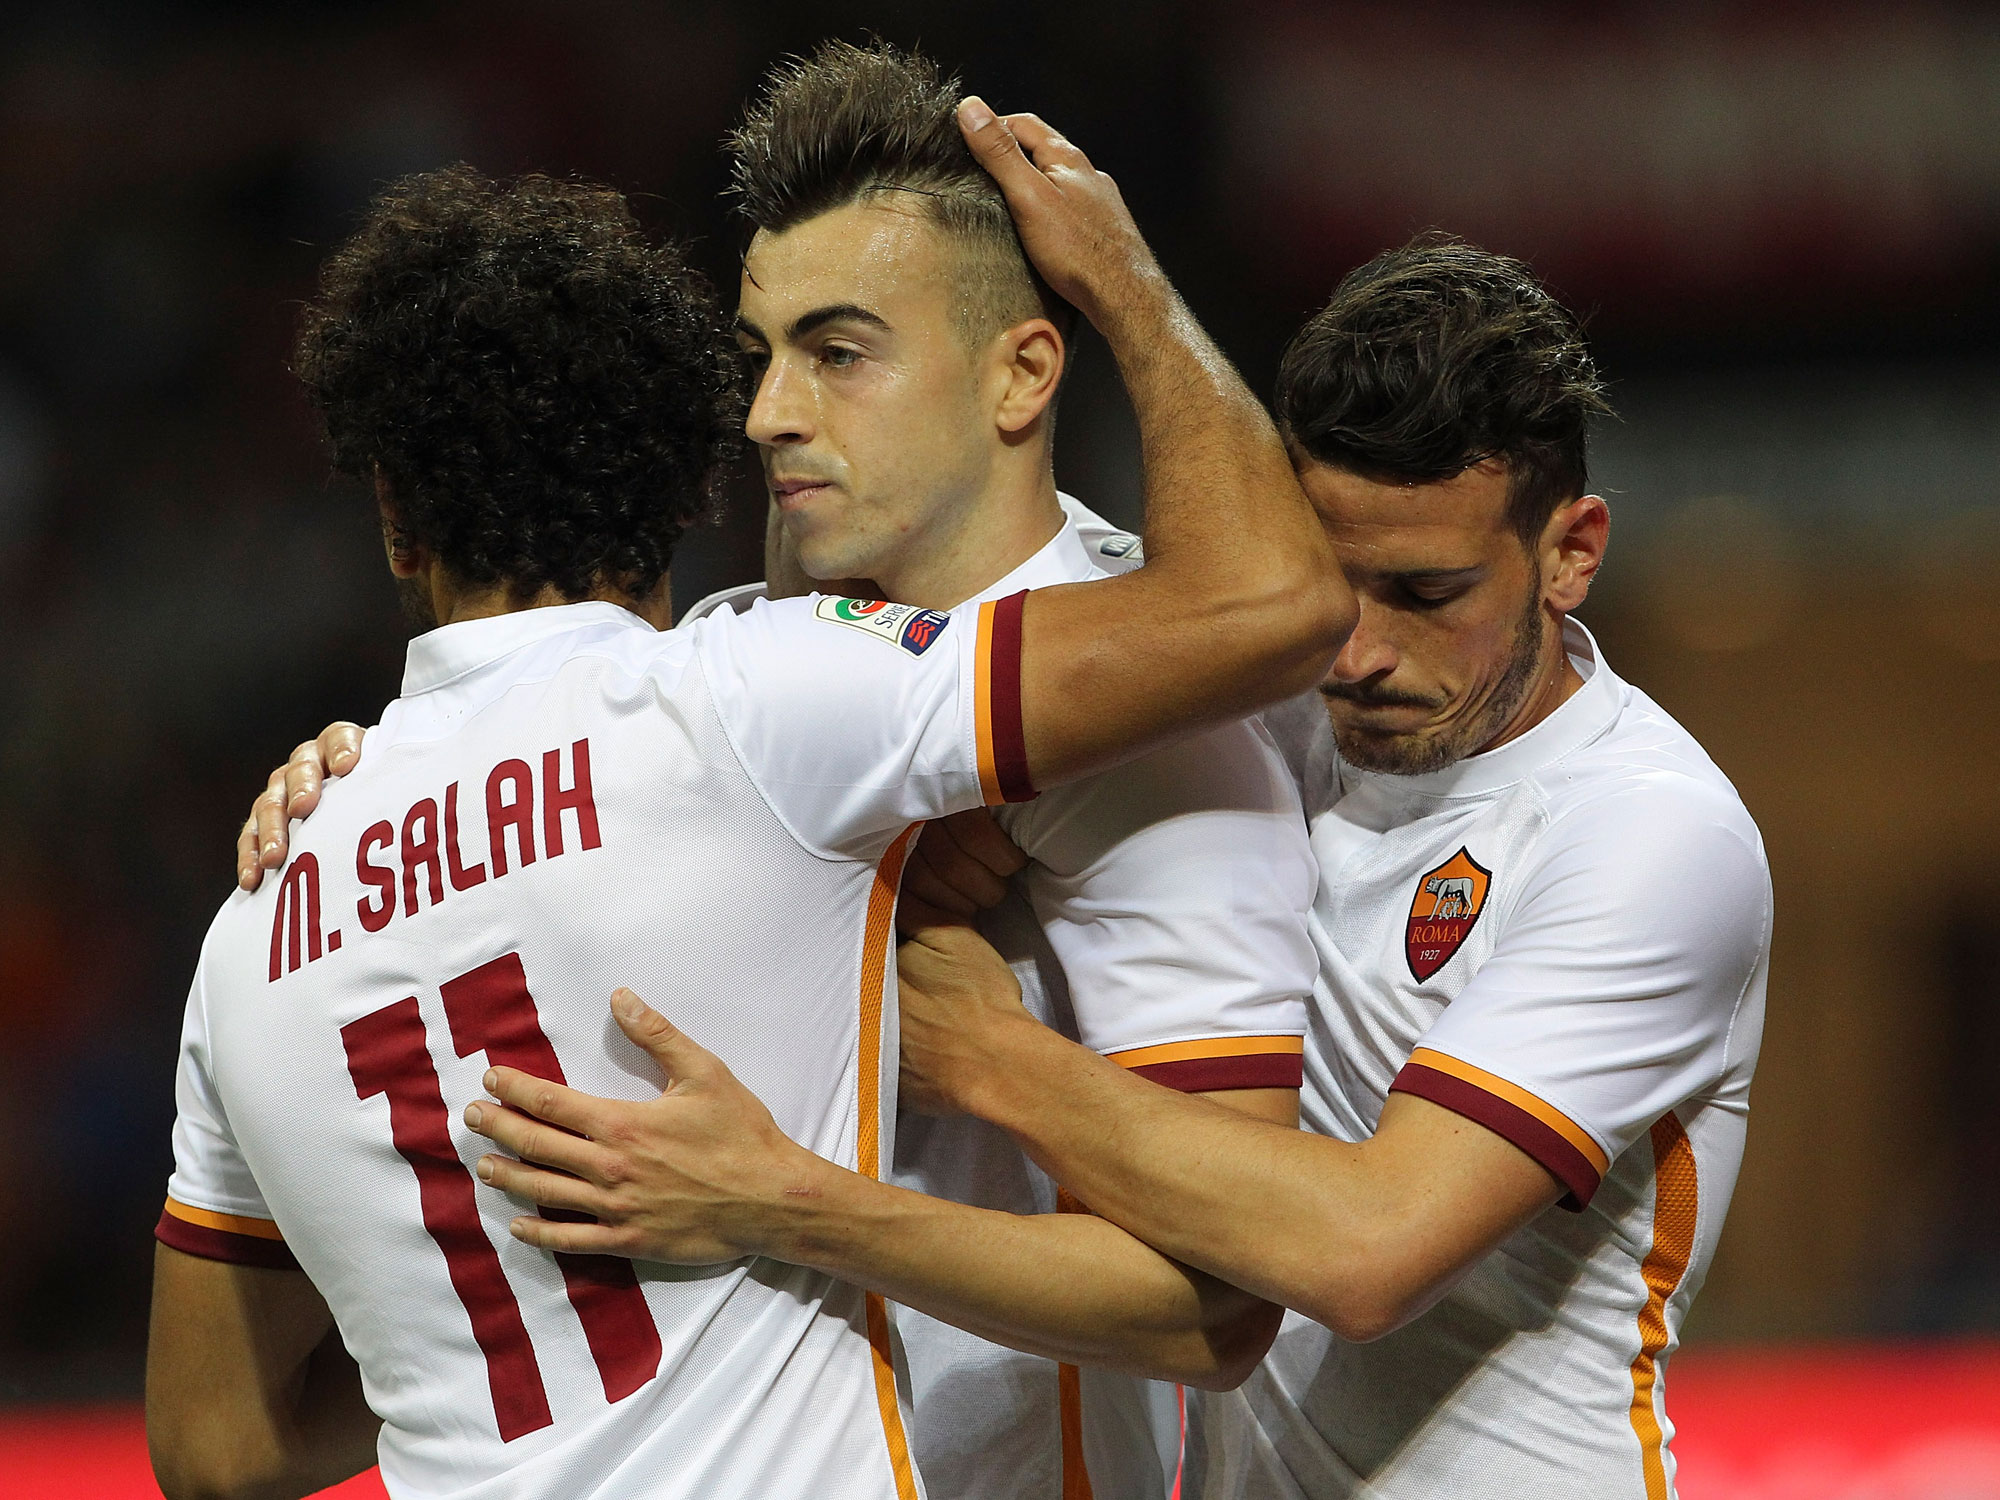 AS Roma's Mohamed Salah and Stephan El Shaarawy are part of the club's younger core